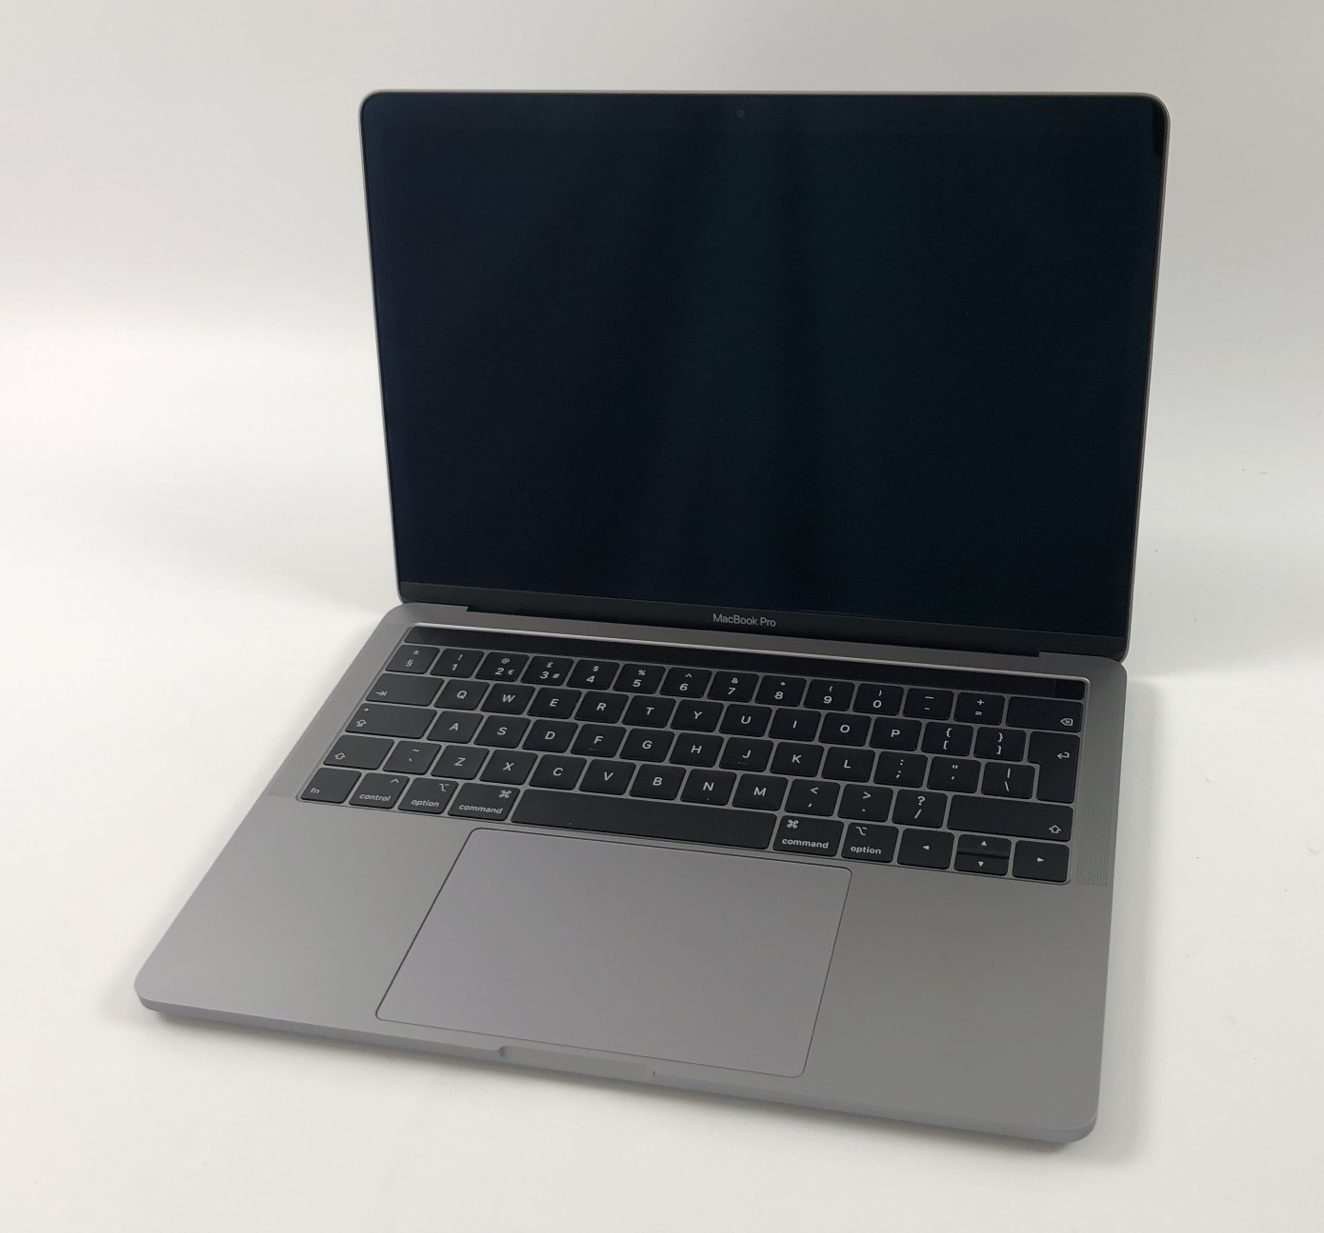 "MacBook Pro 13"" 4TBT Mid 2019 (Intel Quad-Core i5 2.4 GHz 8 GB RAM 256 GB SSD), Space Gray, Intel Quad-Core i5 2.4 GHz, 8 GB RAM, 256 GB SSD, image 1"